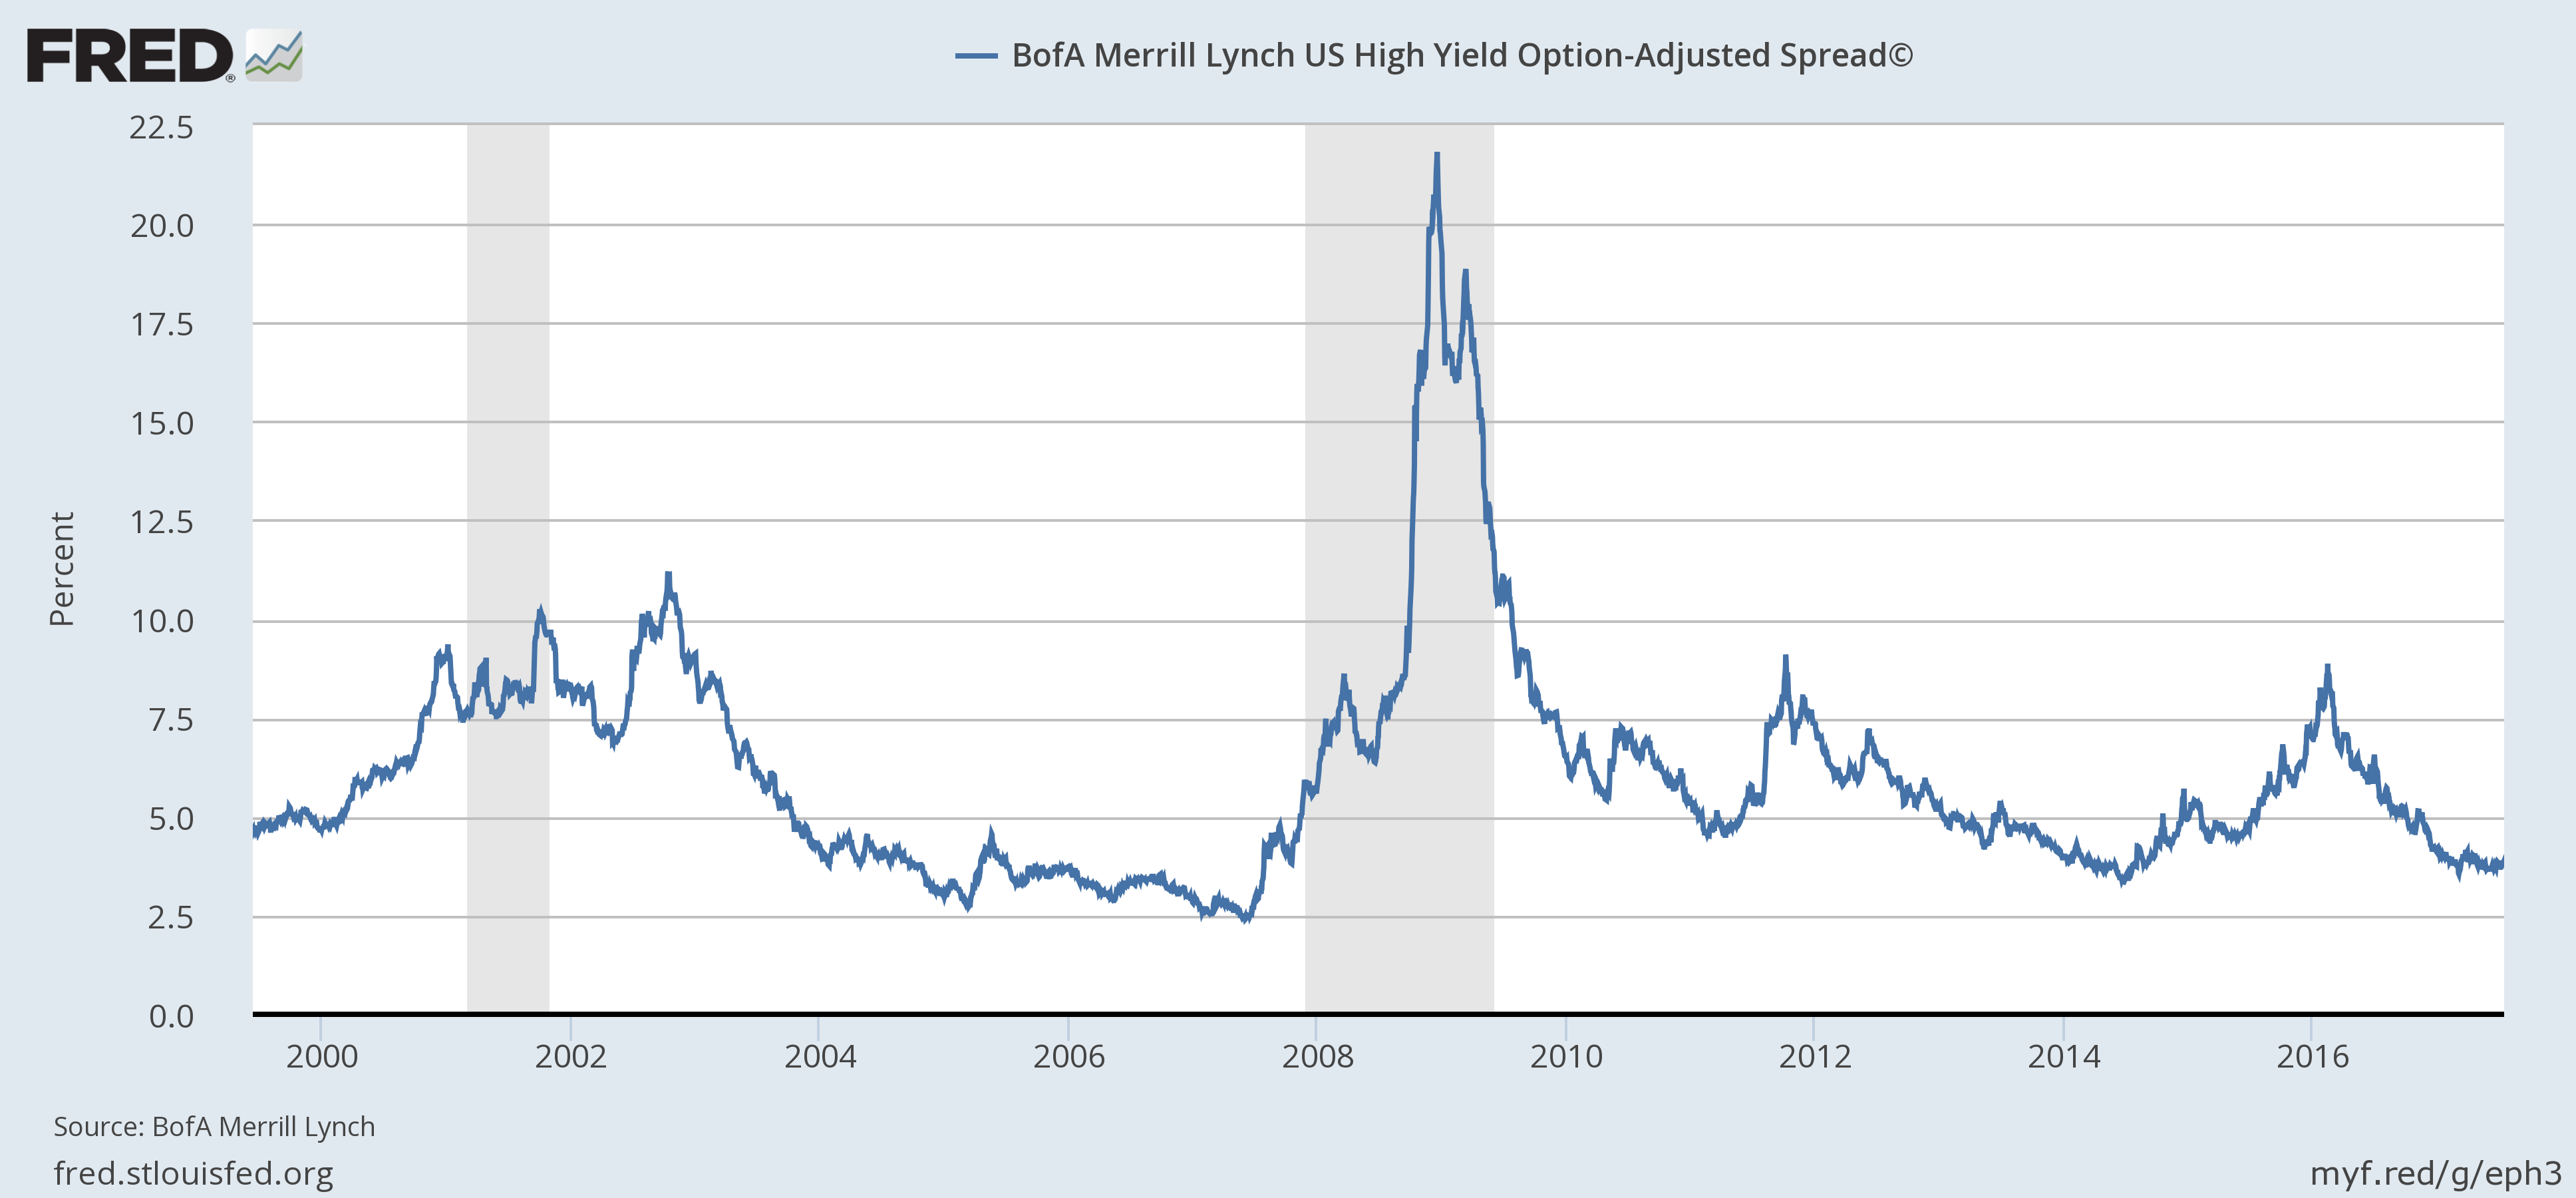 US High Yield Option-Adjusted Spread, 2000 - 2017